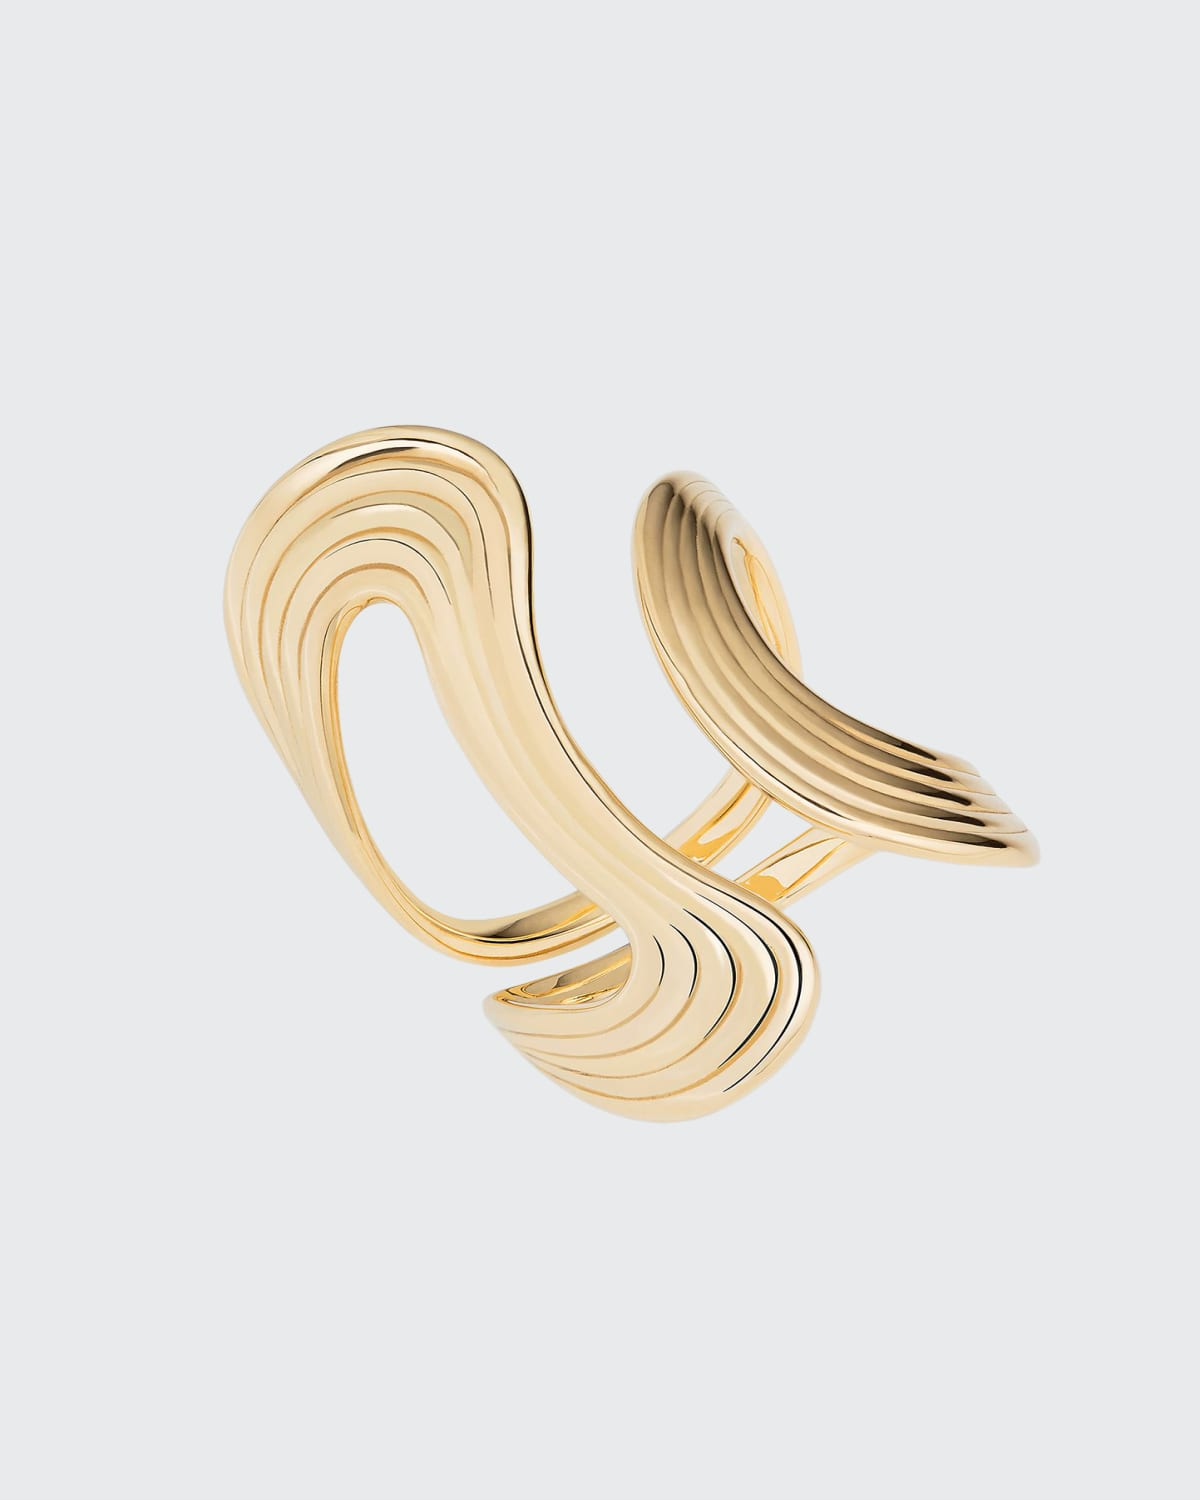 Stream Lines Ring in 18k Yellow Gold